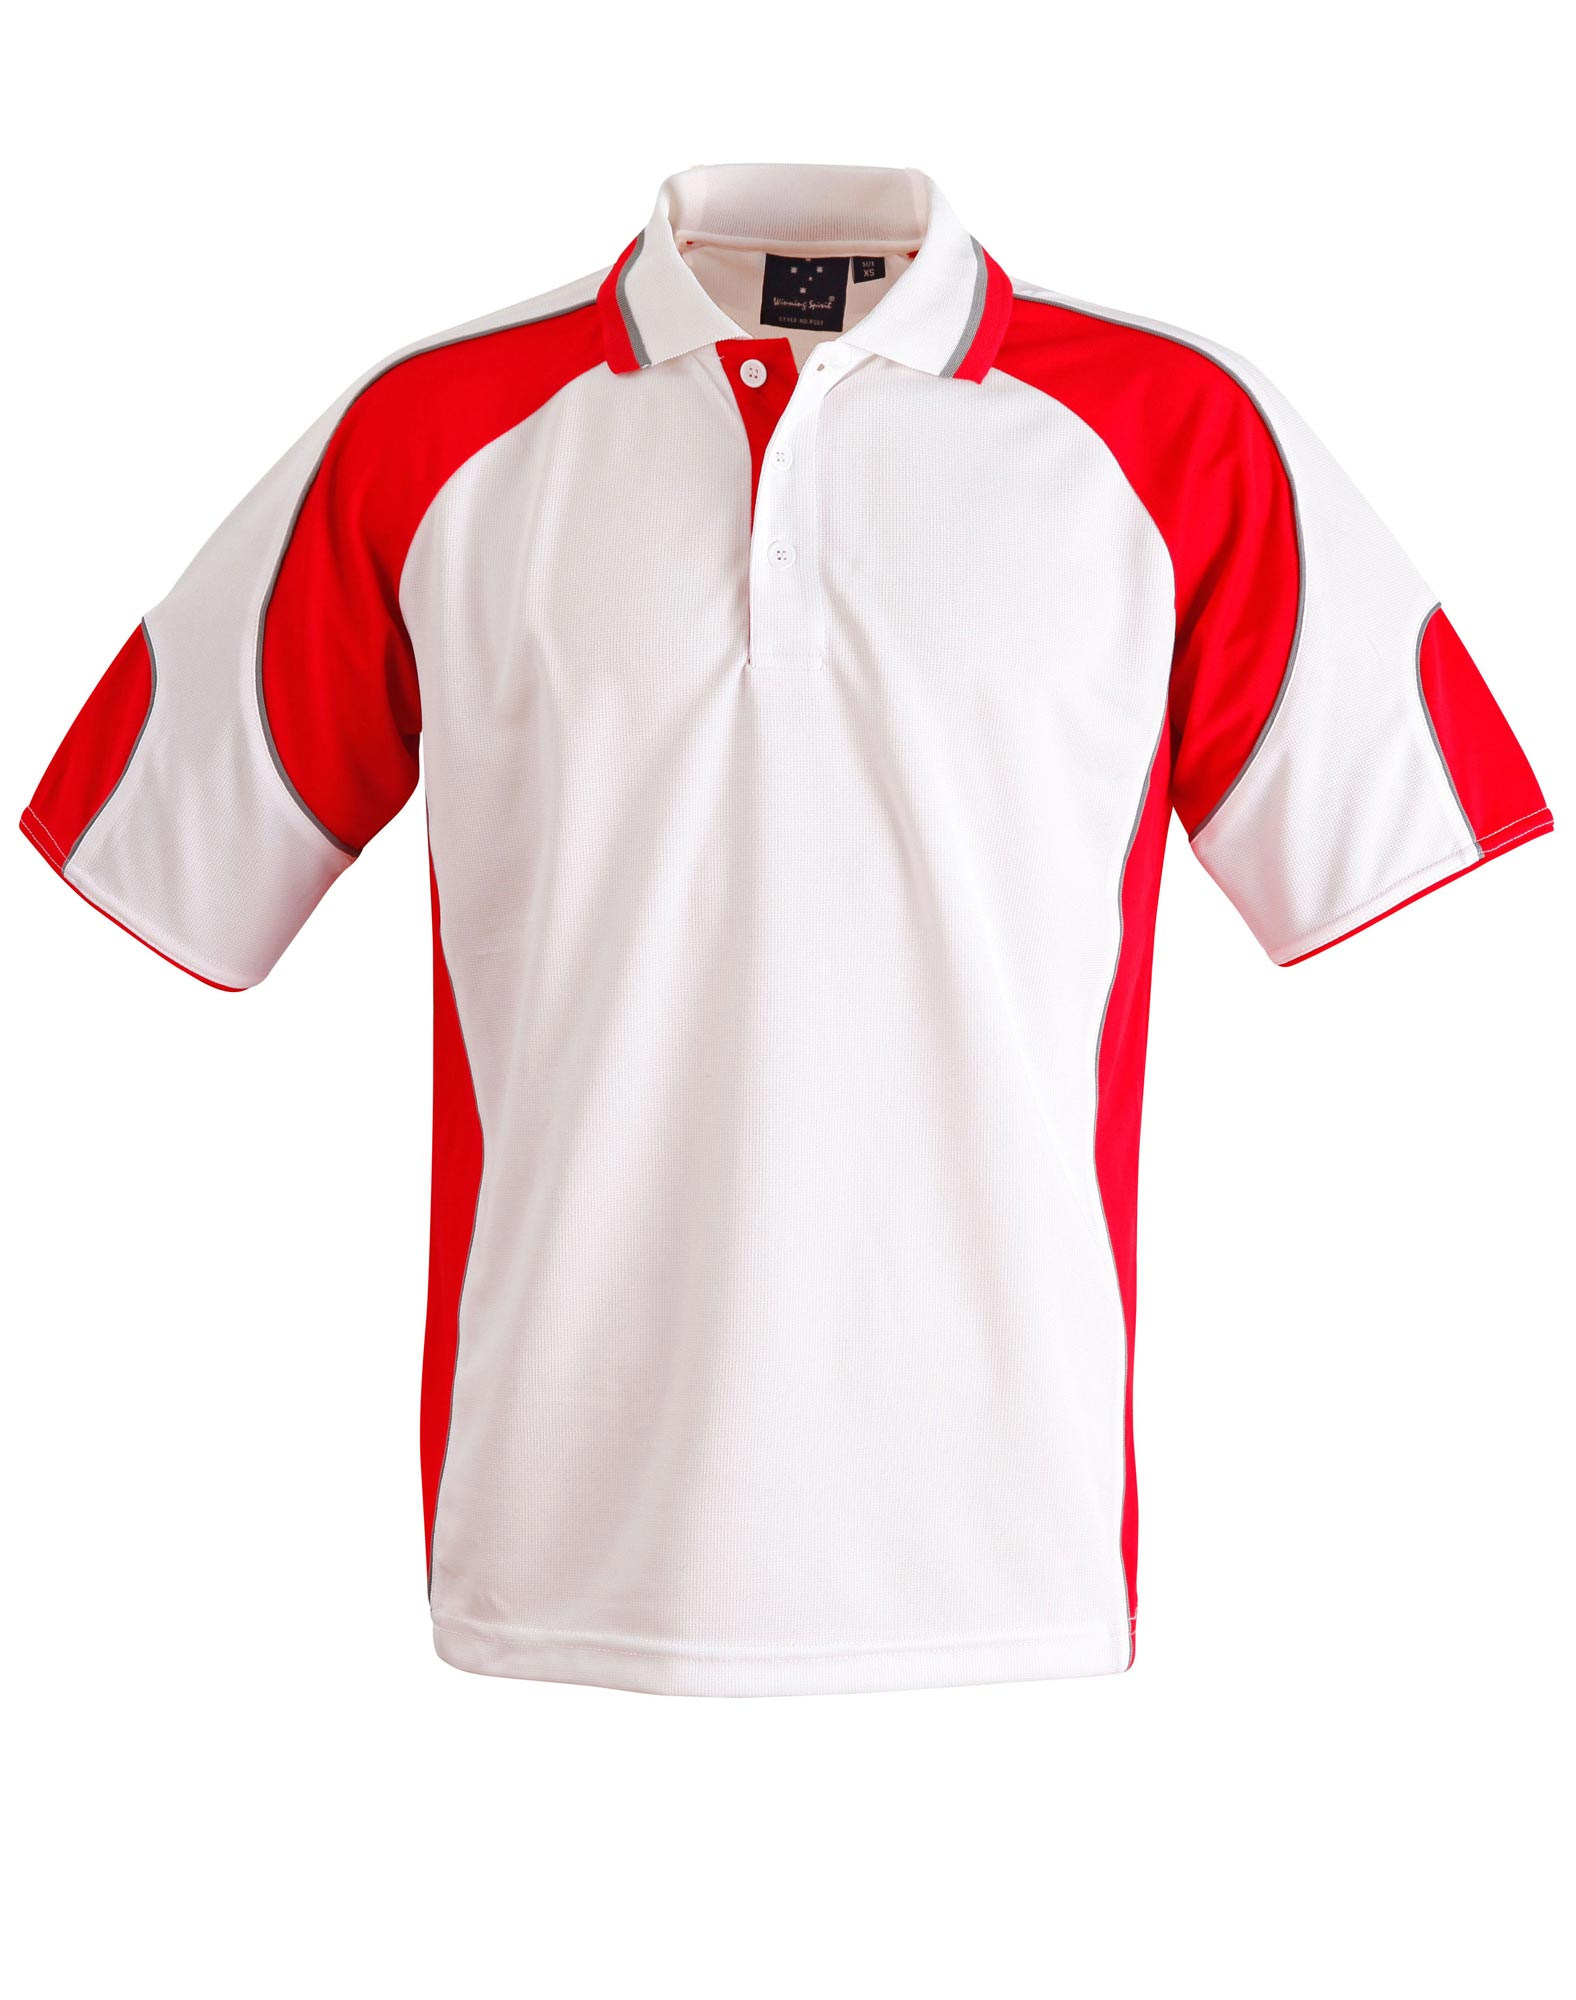 Ps61k kids cooldry contrast polo shirt with sleeve panels for Personalized polo shirts for toddlers